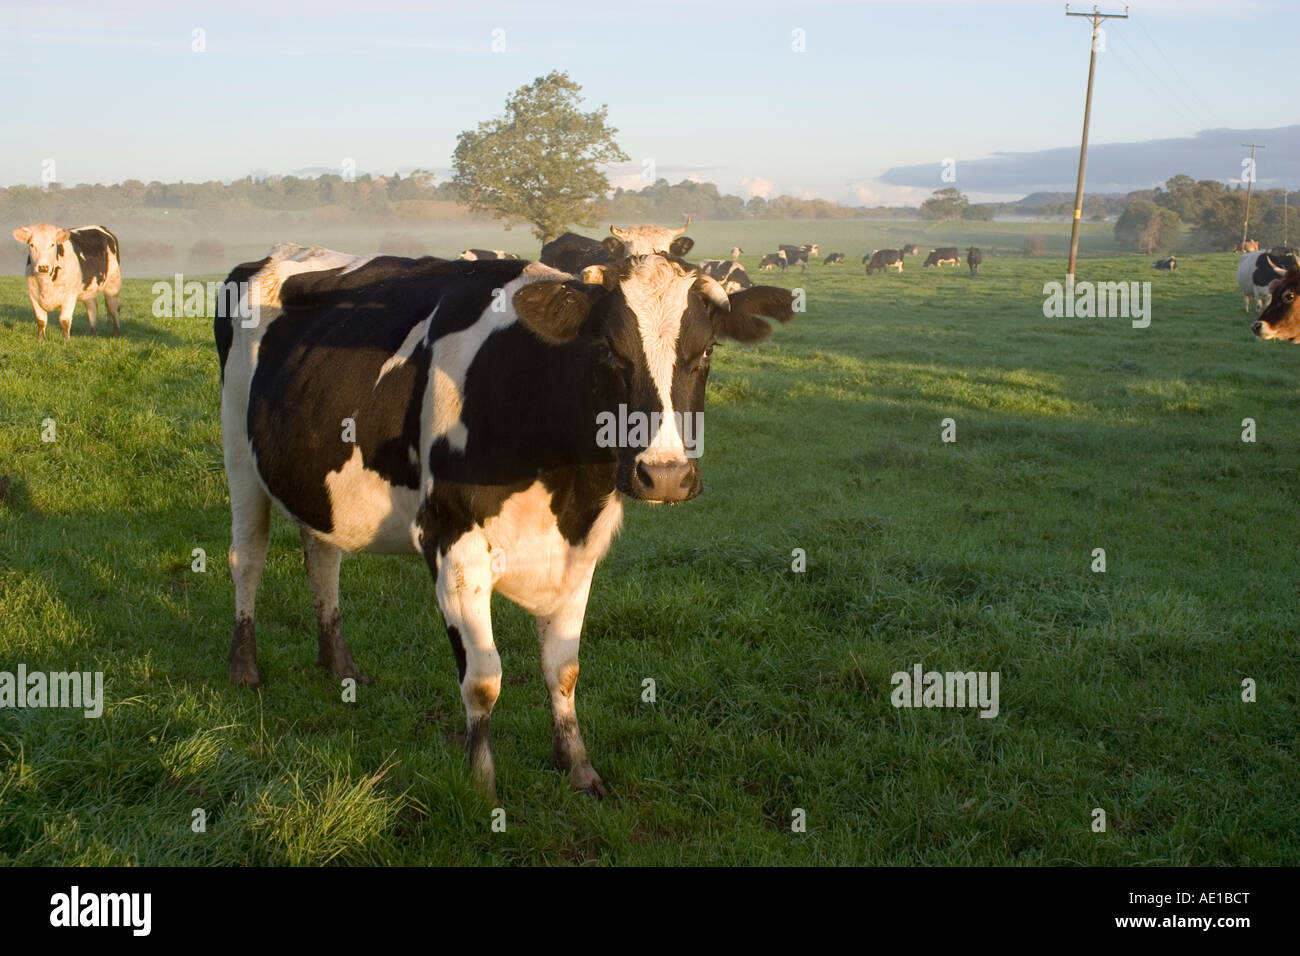 the social issue that recently dominated great britain the mad cow disease scare A type of cjd called variant cjd (or vcjd) can be acquired by eating meat from cattle affected by a disease similar to cjd called bovine spongiform encephalopathy (bse) or, commonly, mad cow disease.